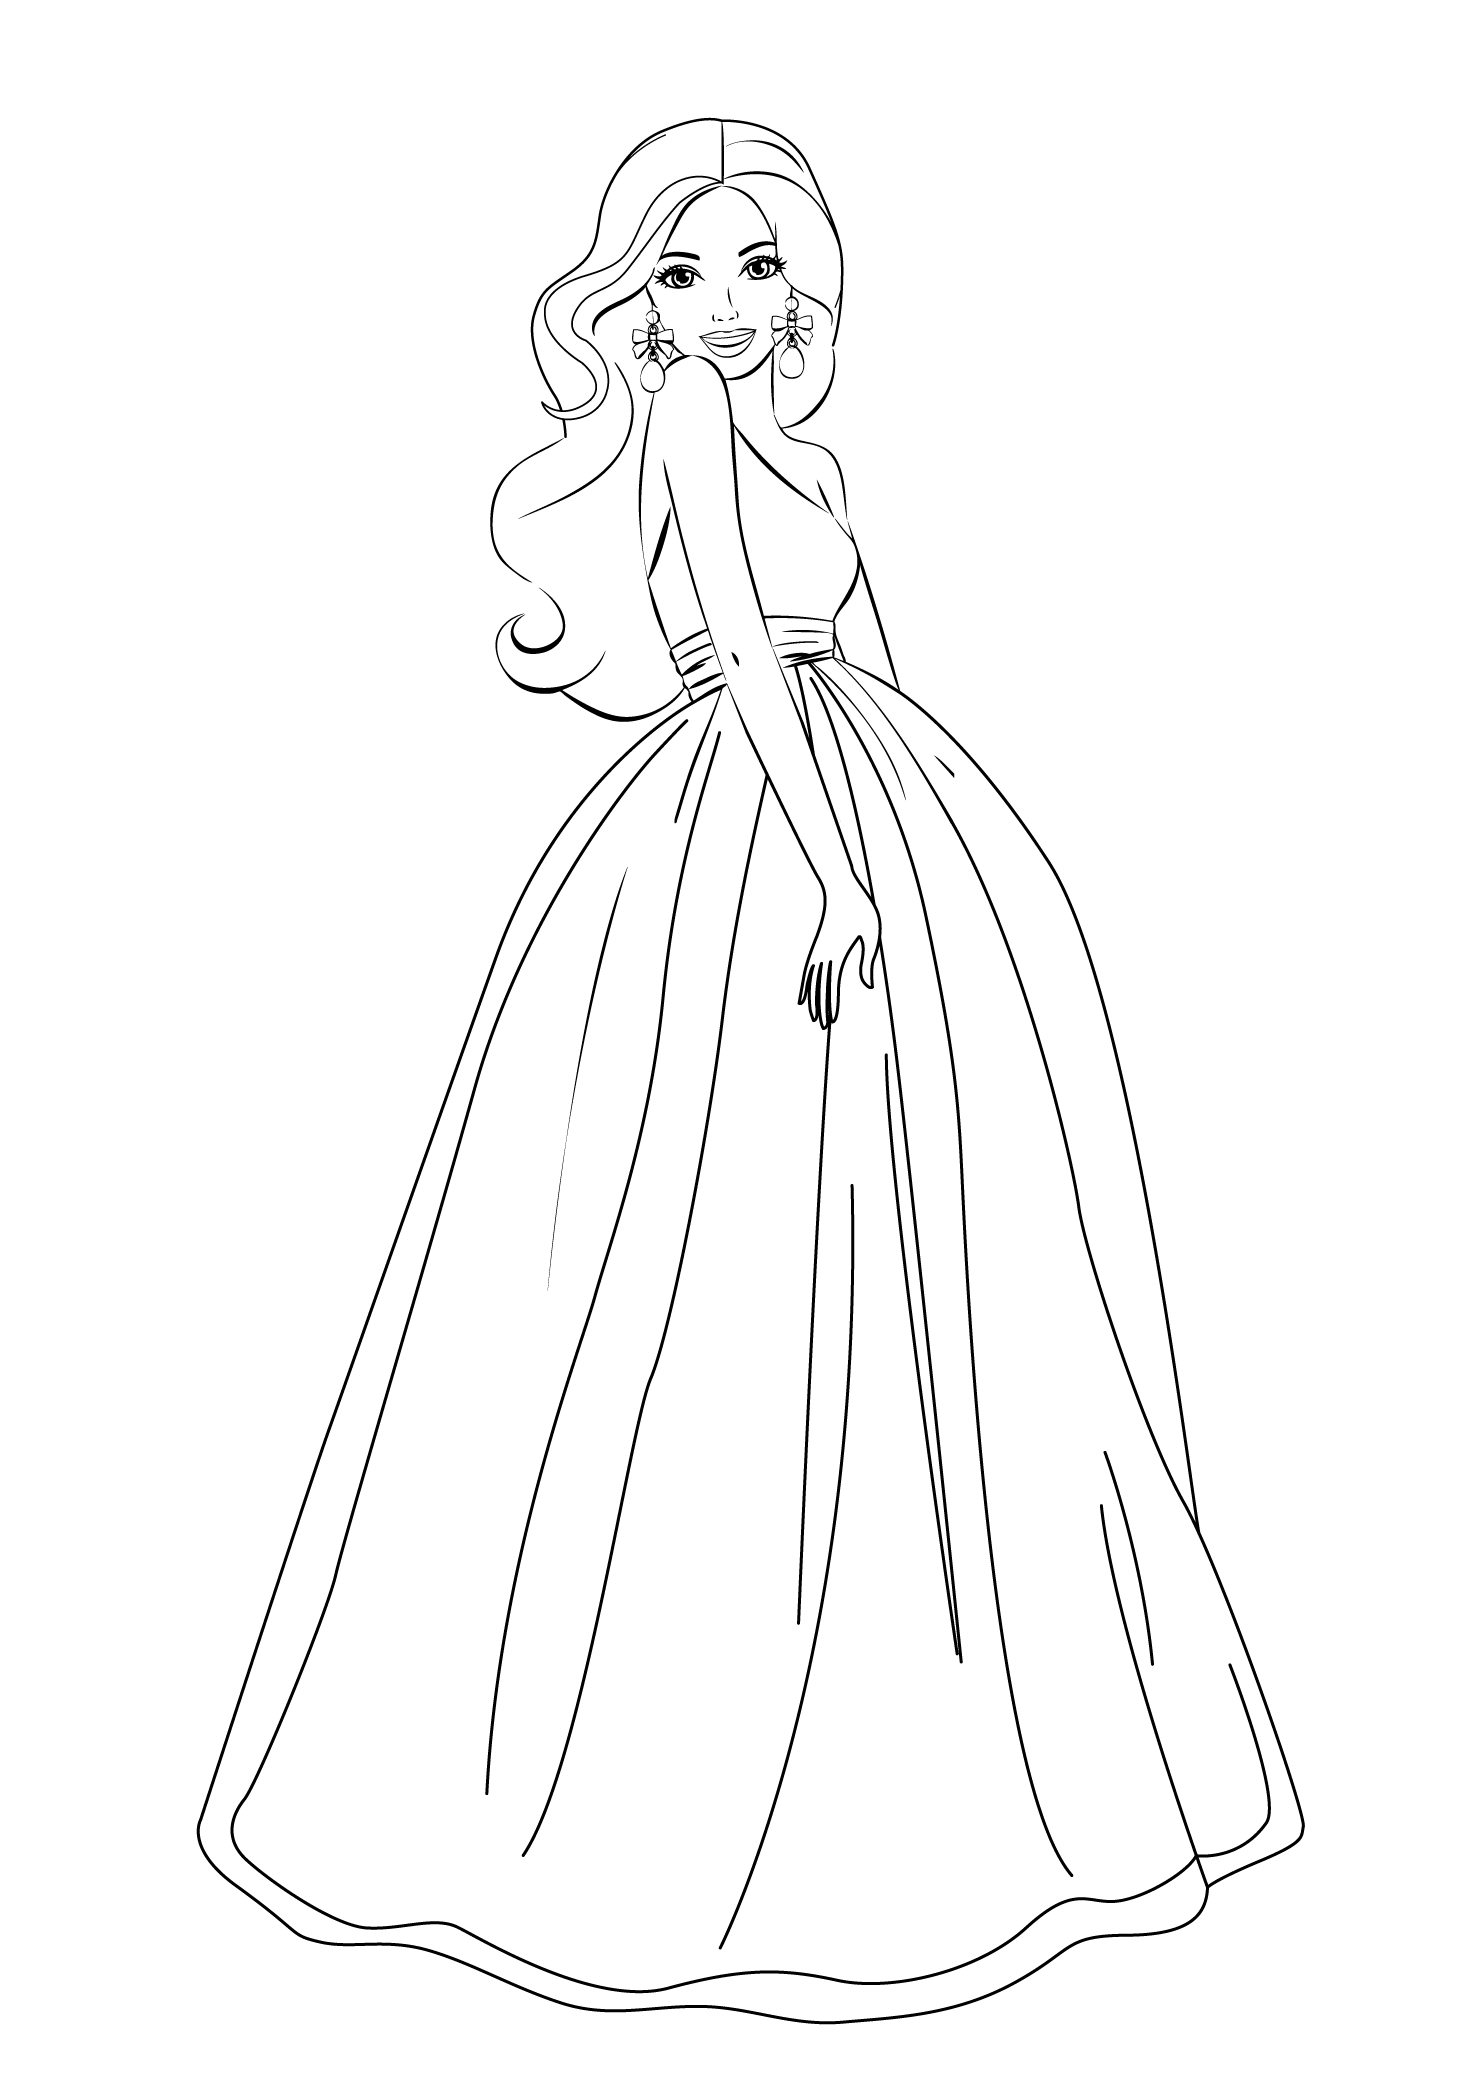 barbie coloring pages for girls free printable   ぬりえ   ぬりえ